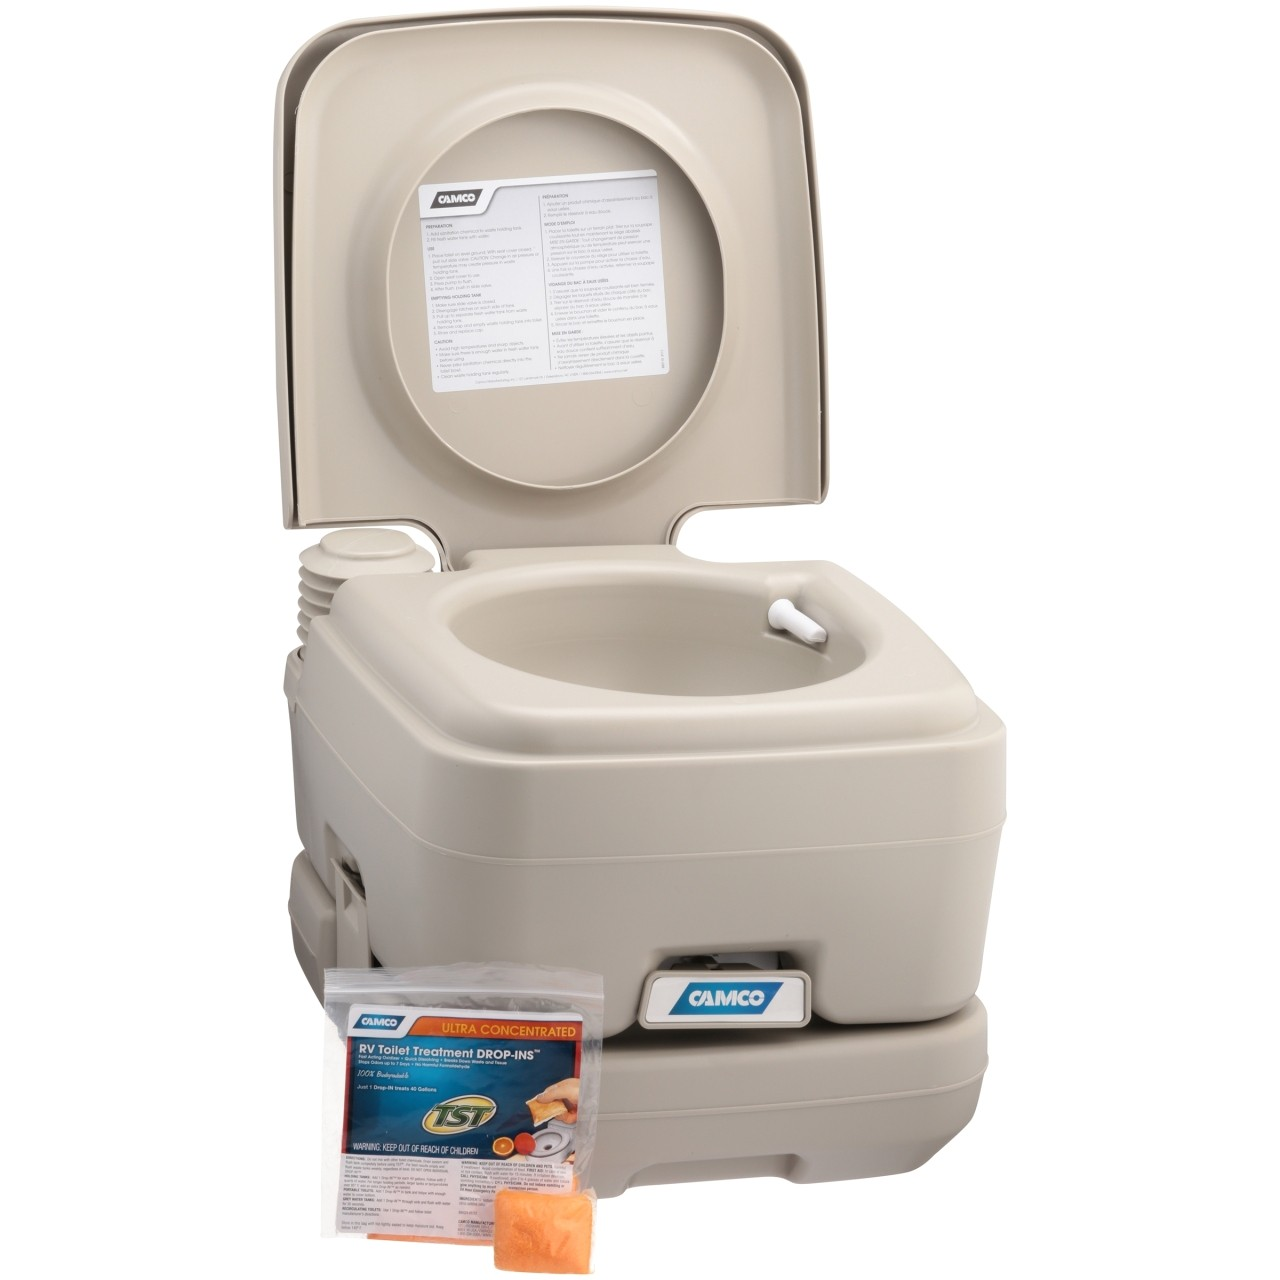 portable bathroom and shower elegant camco portable toilet with rv toilet treatment drop ins walmart